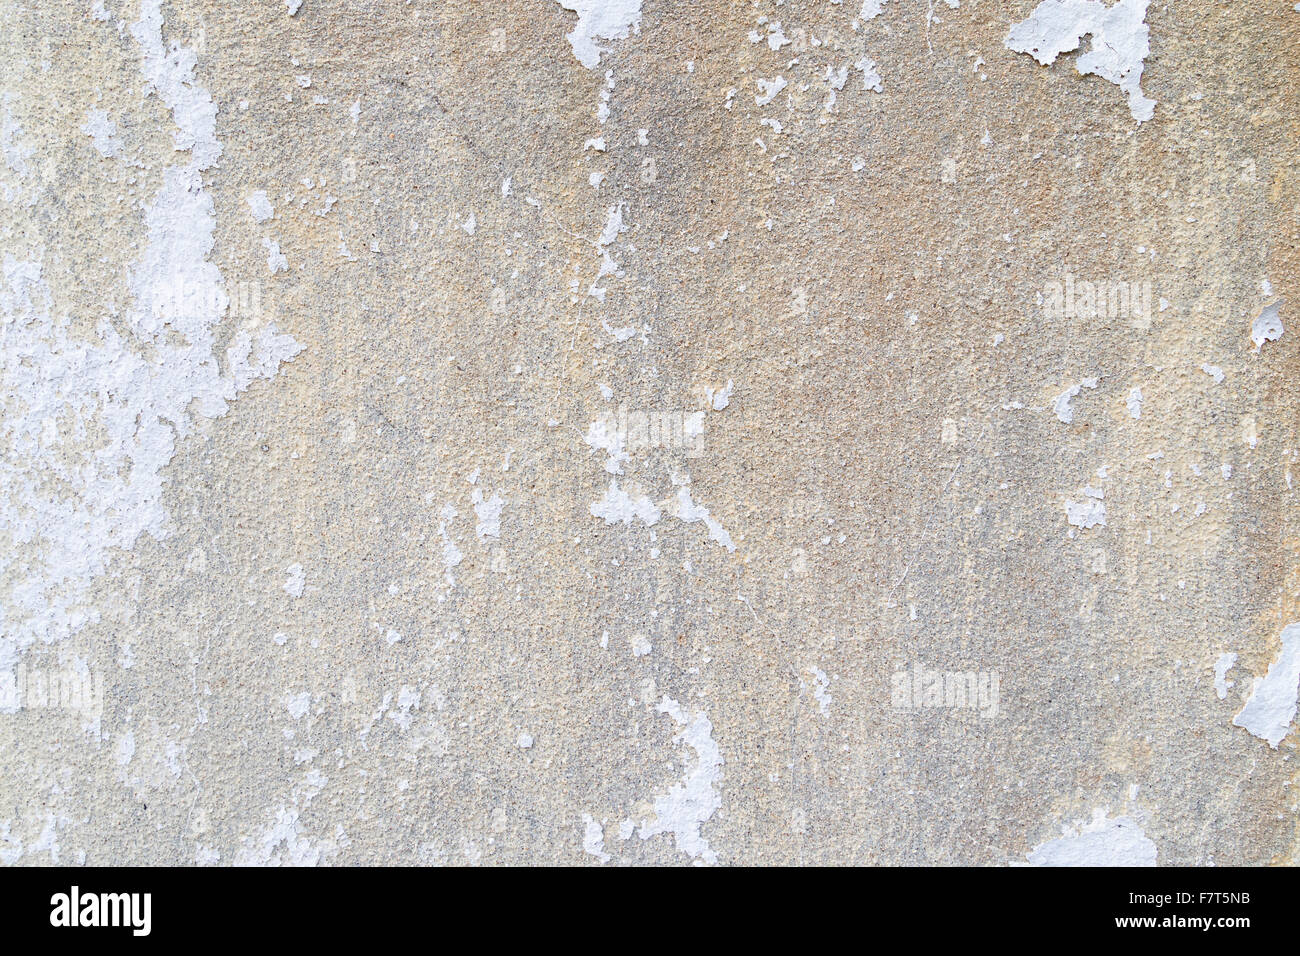 Weathered concrete wall with white plastering/paint peeled off. Stock Photo